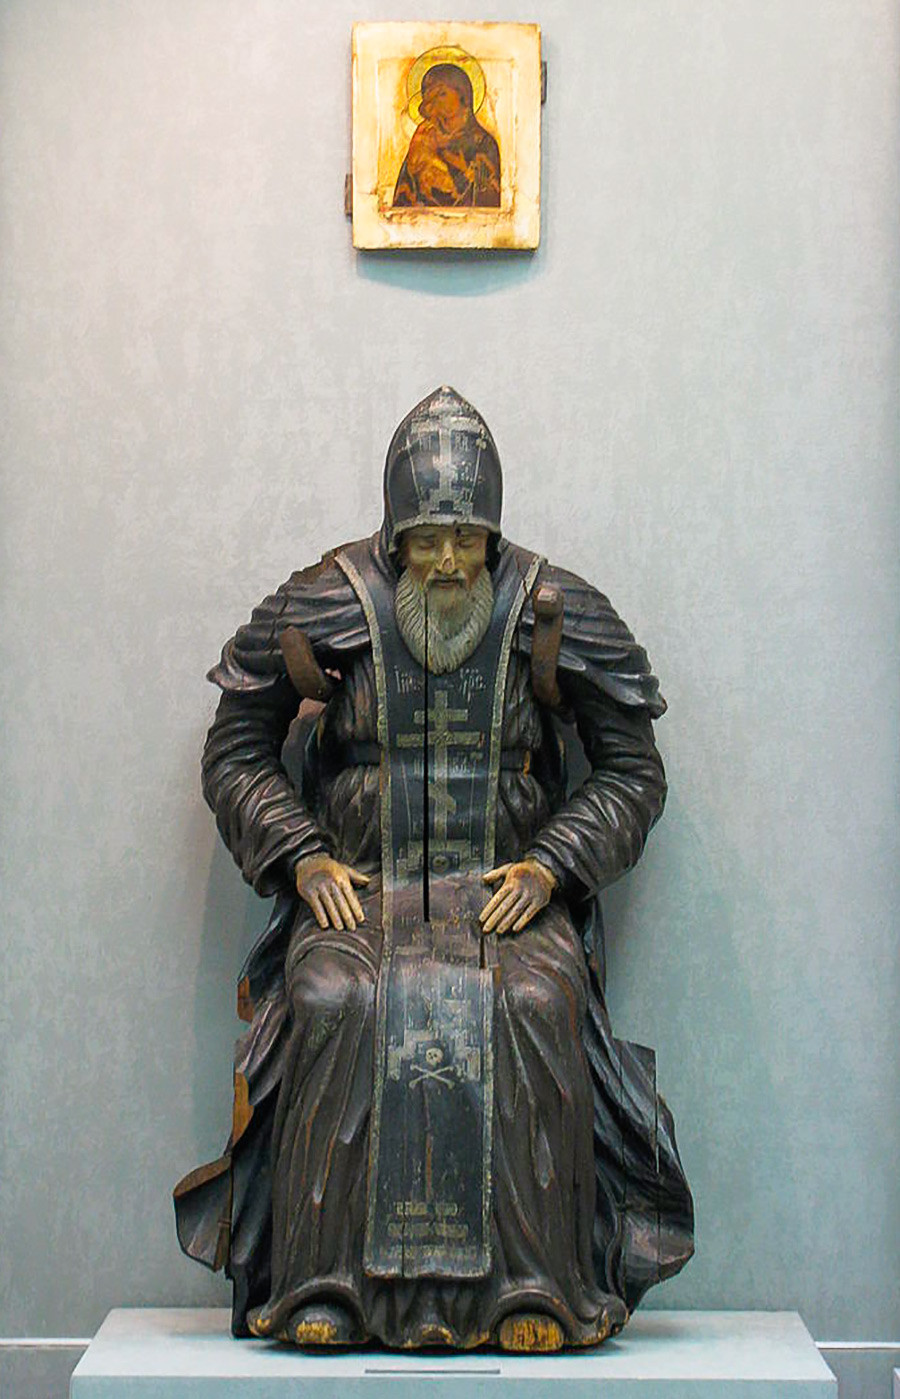 The 17th-century wooden image of Saint Nilus of Stoloben